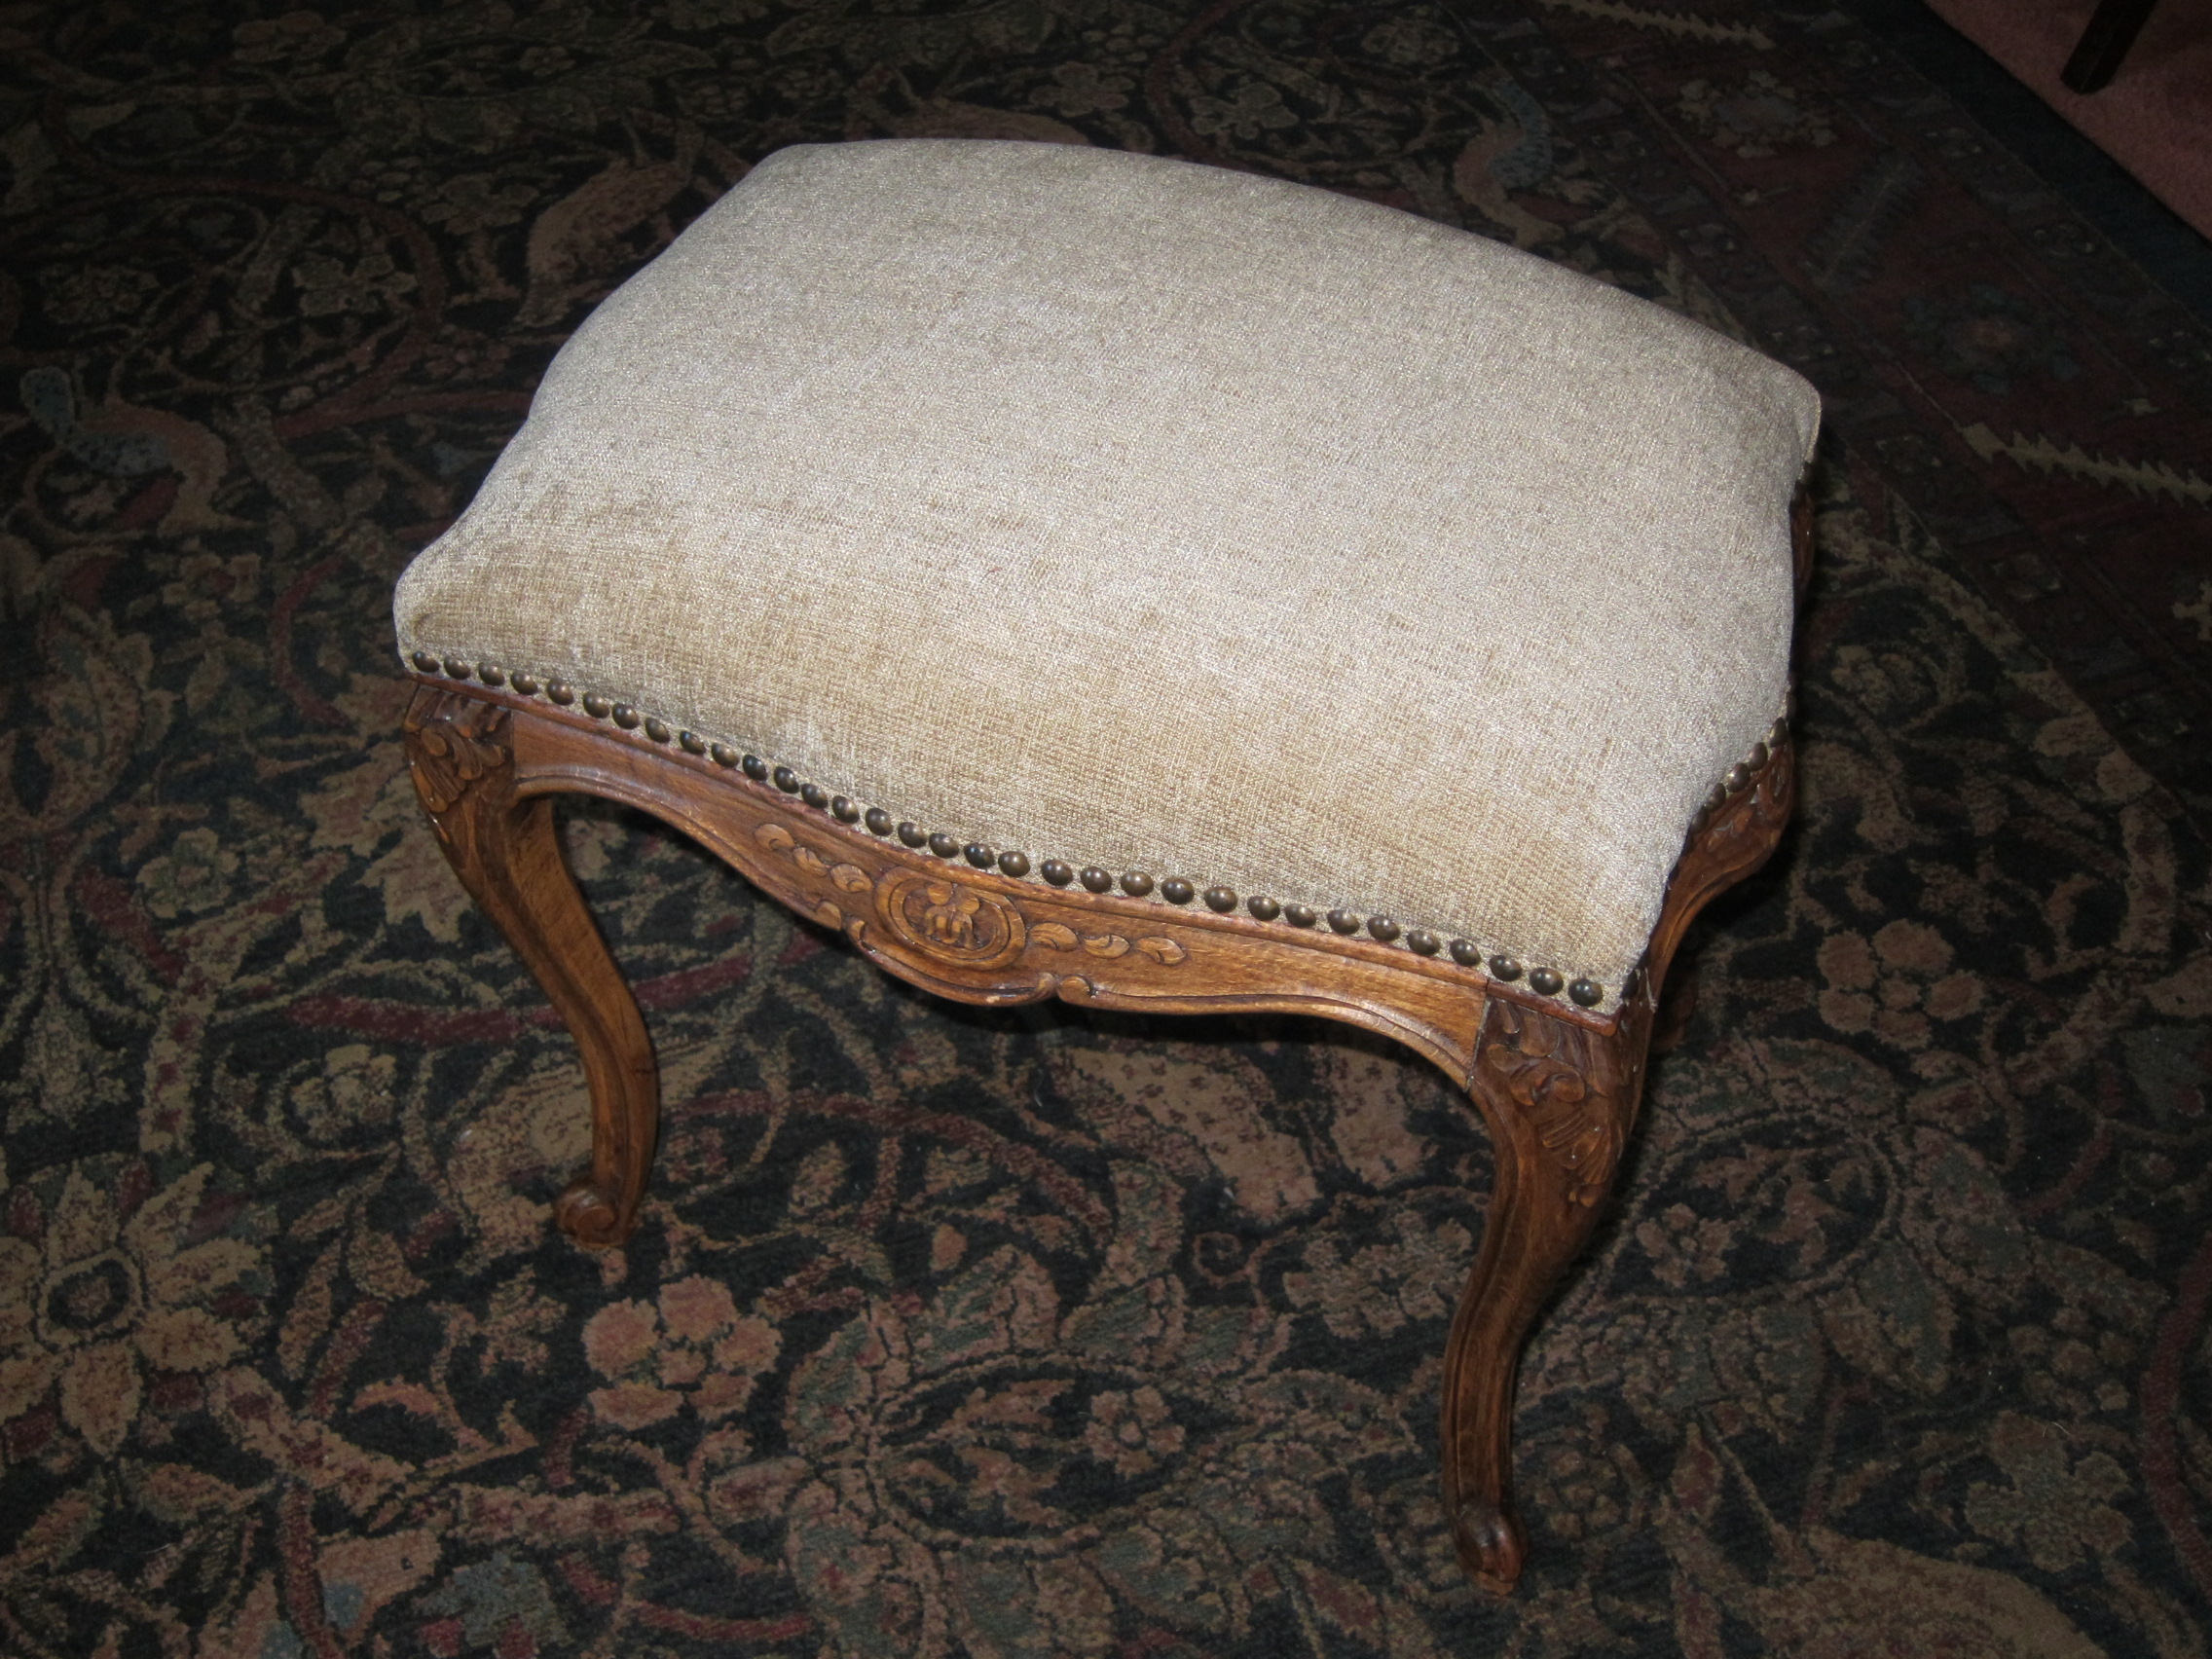 A clean new cover and hobnails update this carved ottoman